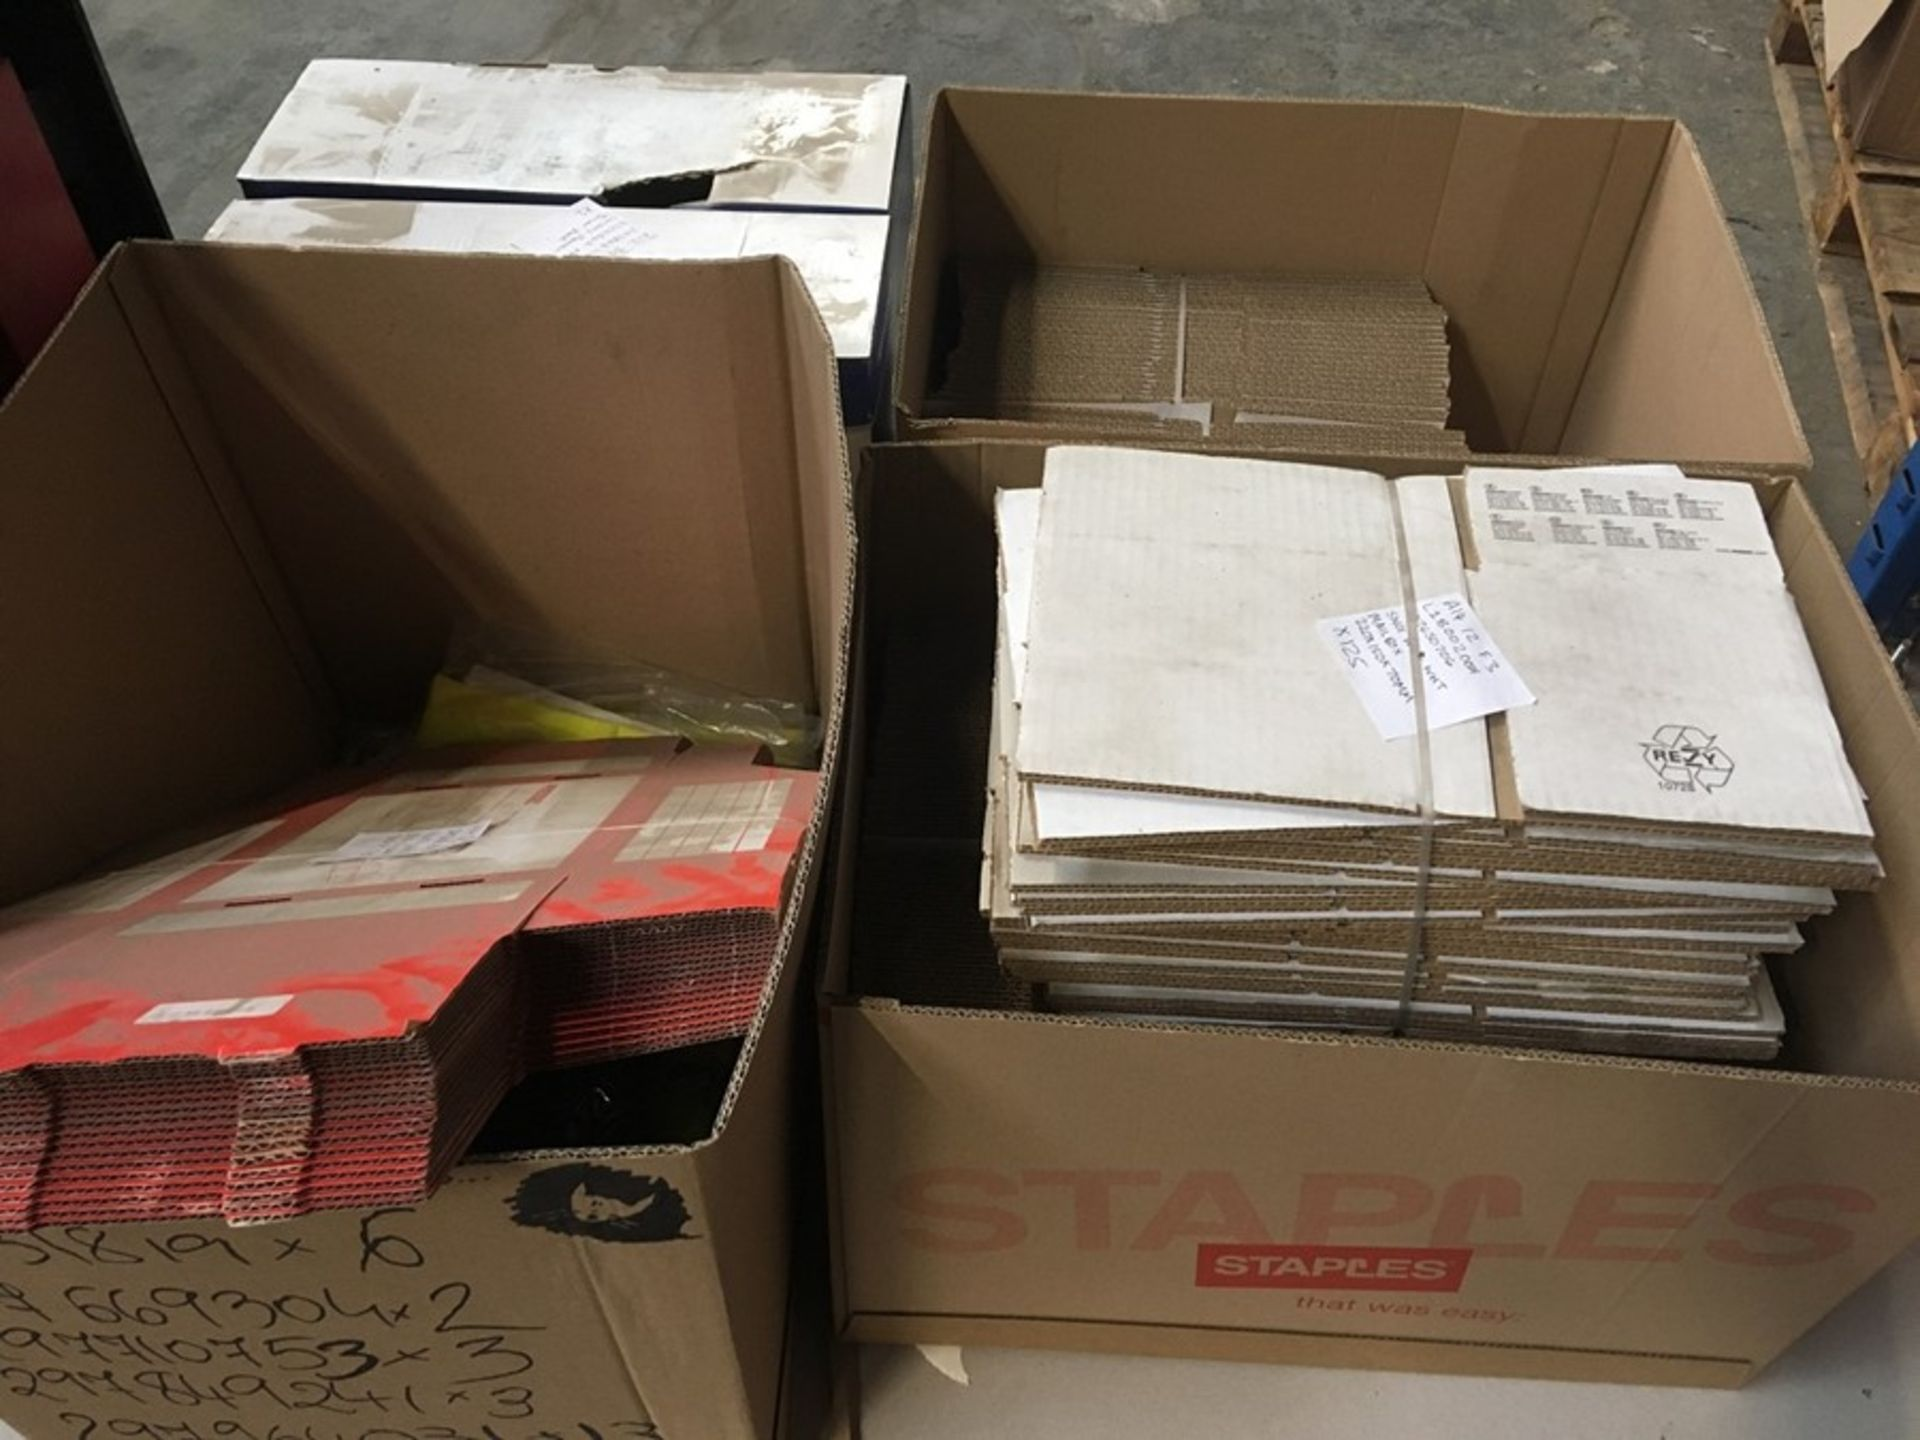 Lot 15 - 1 LOT TO CONTAIN ASSORTED ITEMS / INCLUDES ASSORTED CARDBOARD BOXES, HI-VIS VESTS & PRINTER